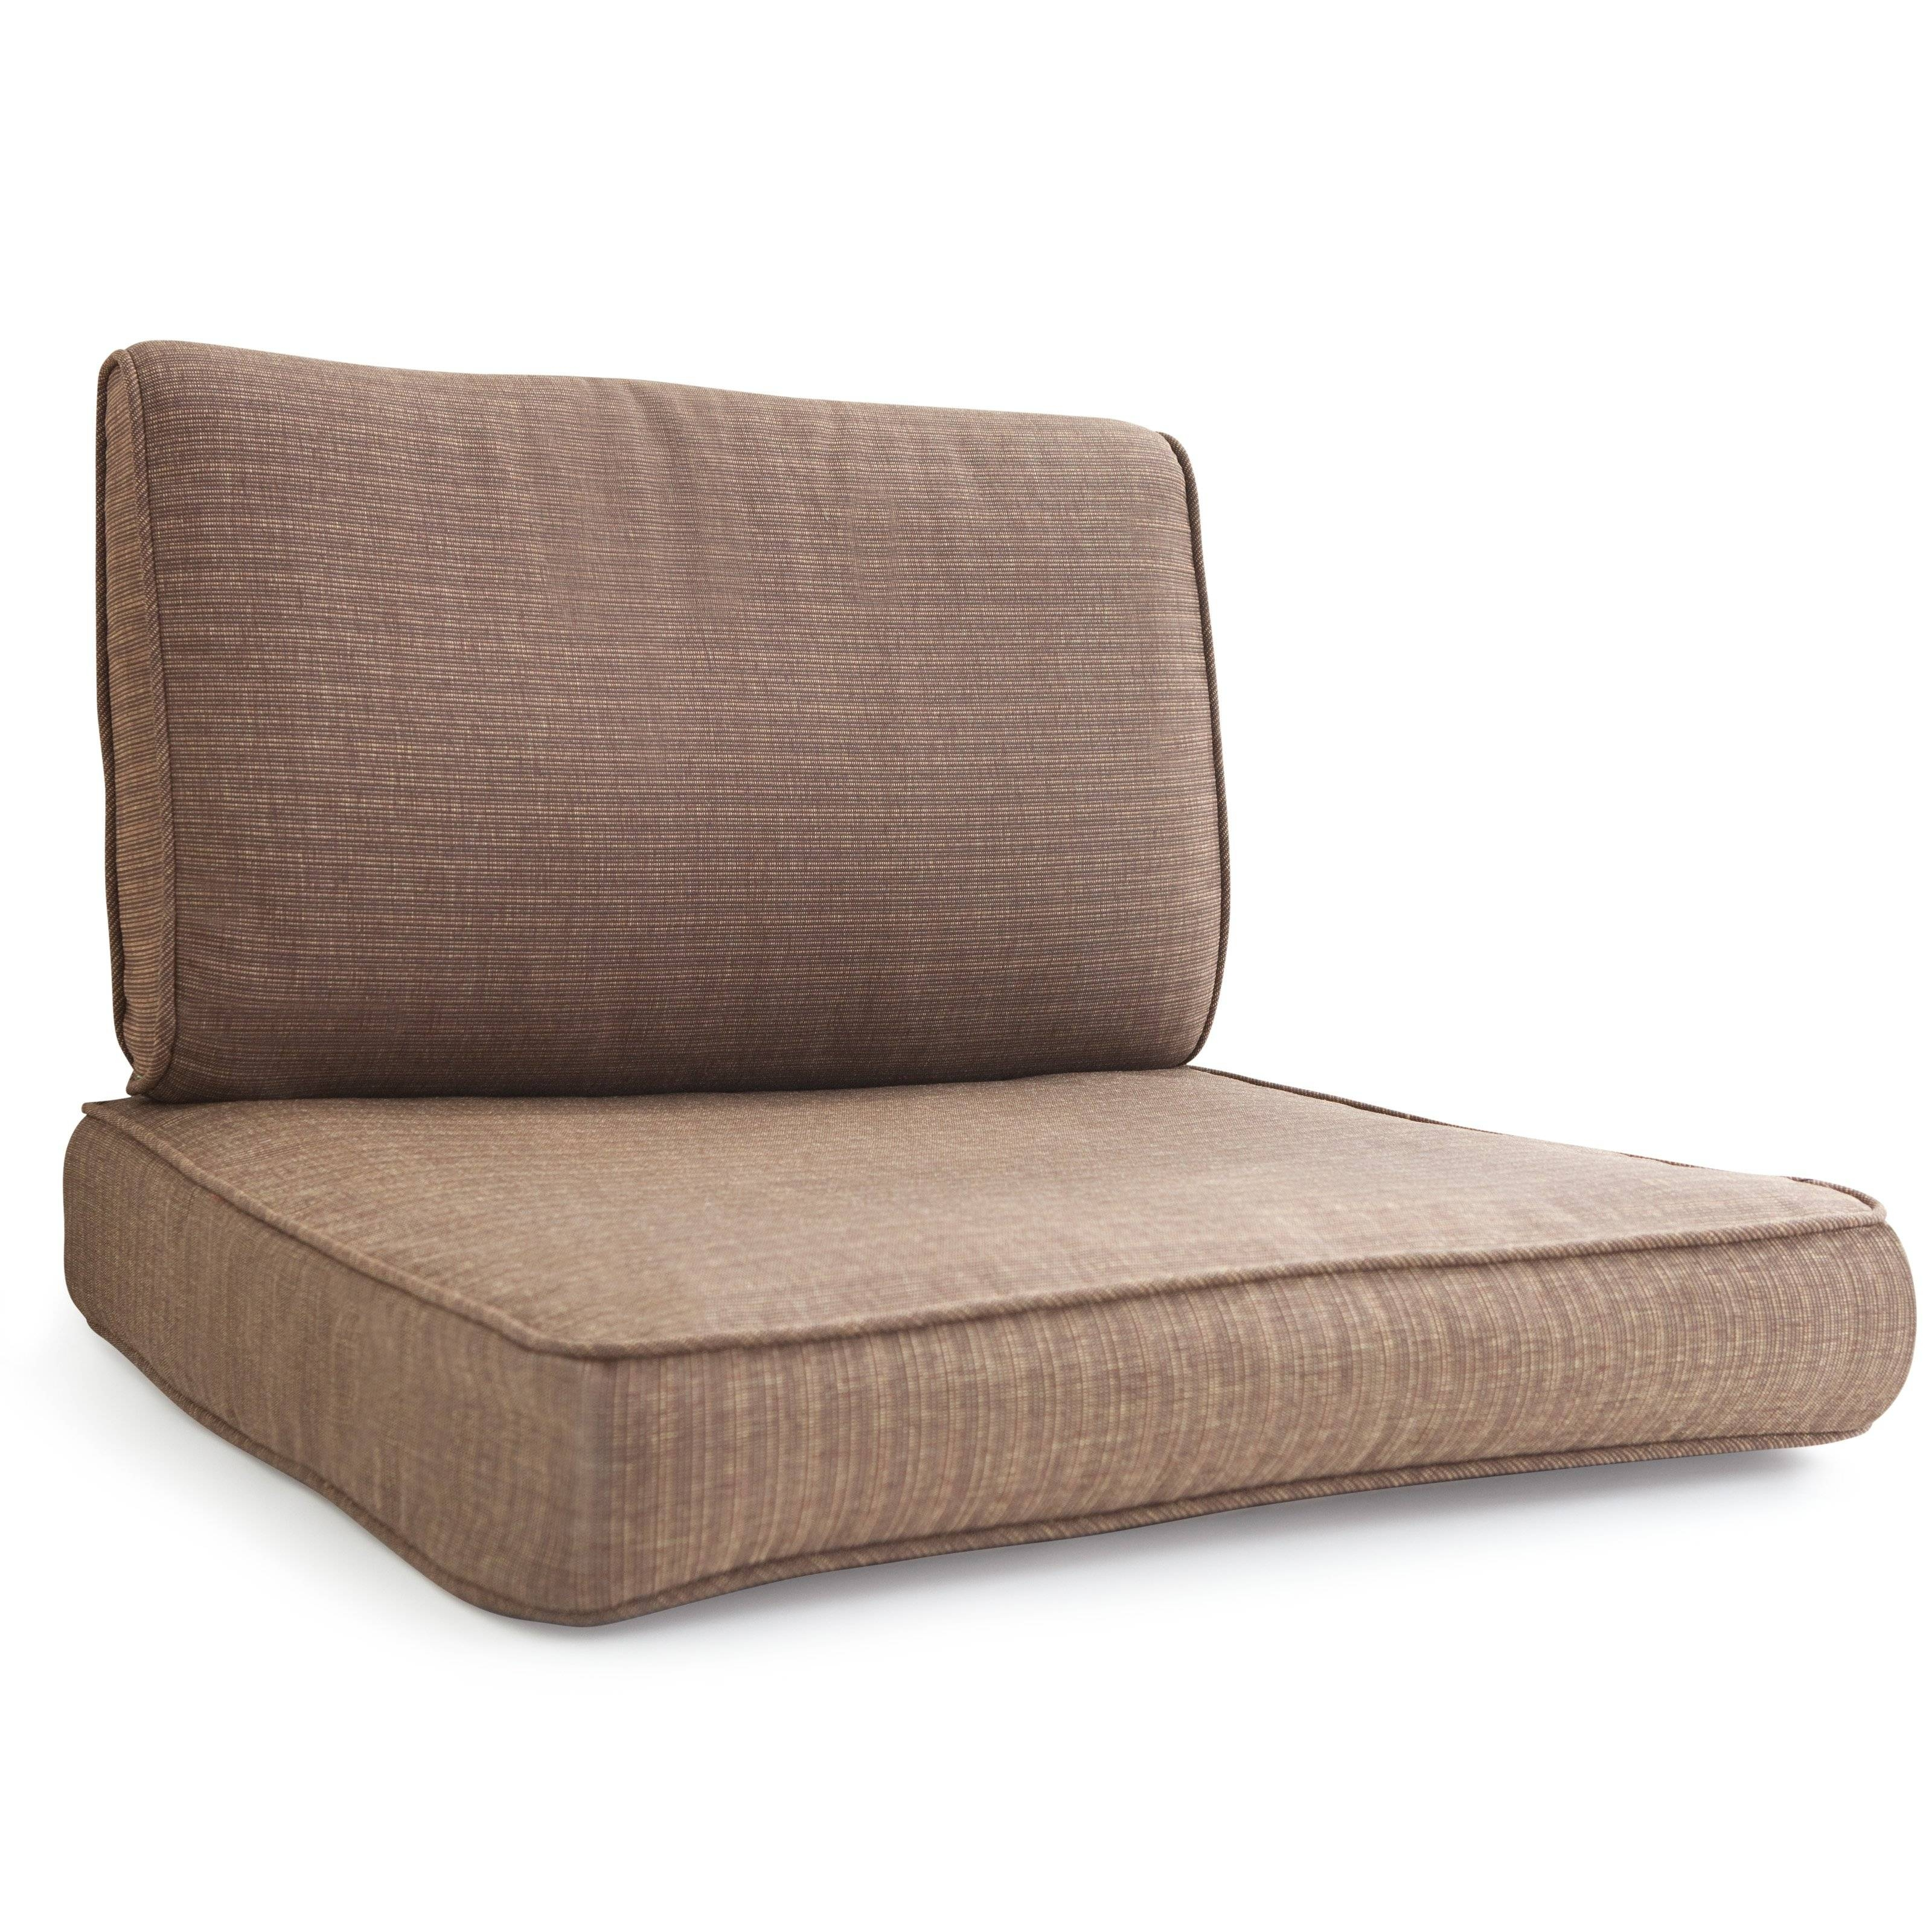 Replacement Sofa Seat Cushion Covers | Memsaheb within Sofa Cushion Covers (Image 13 of 15)